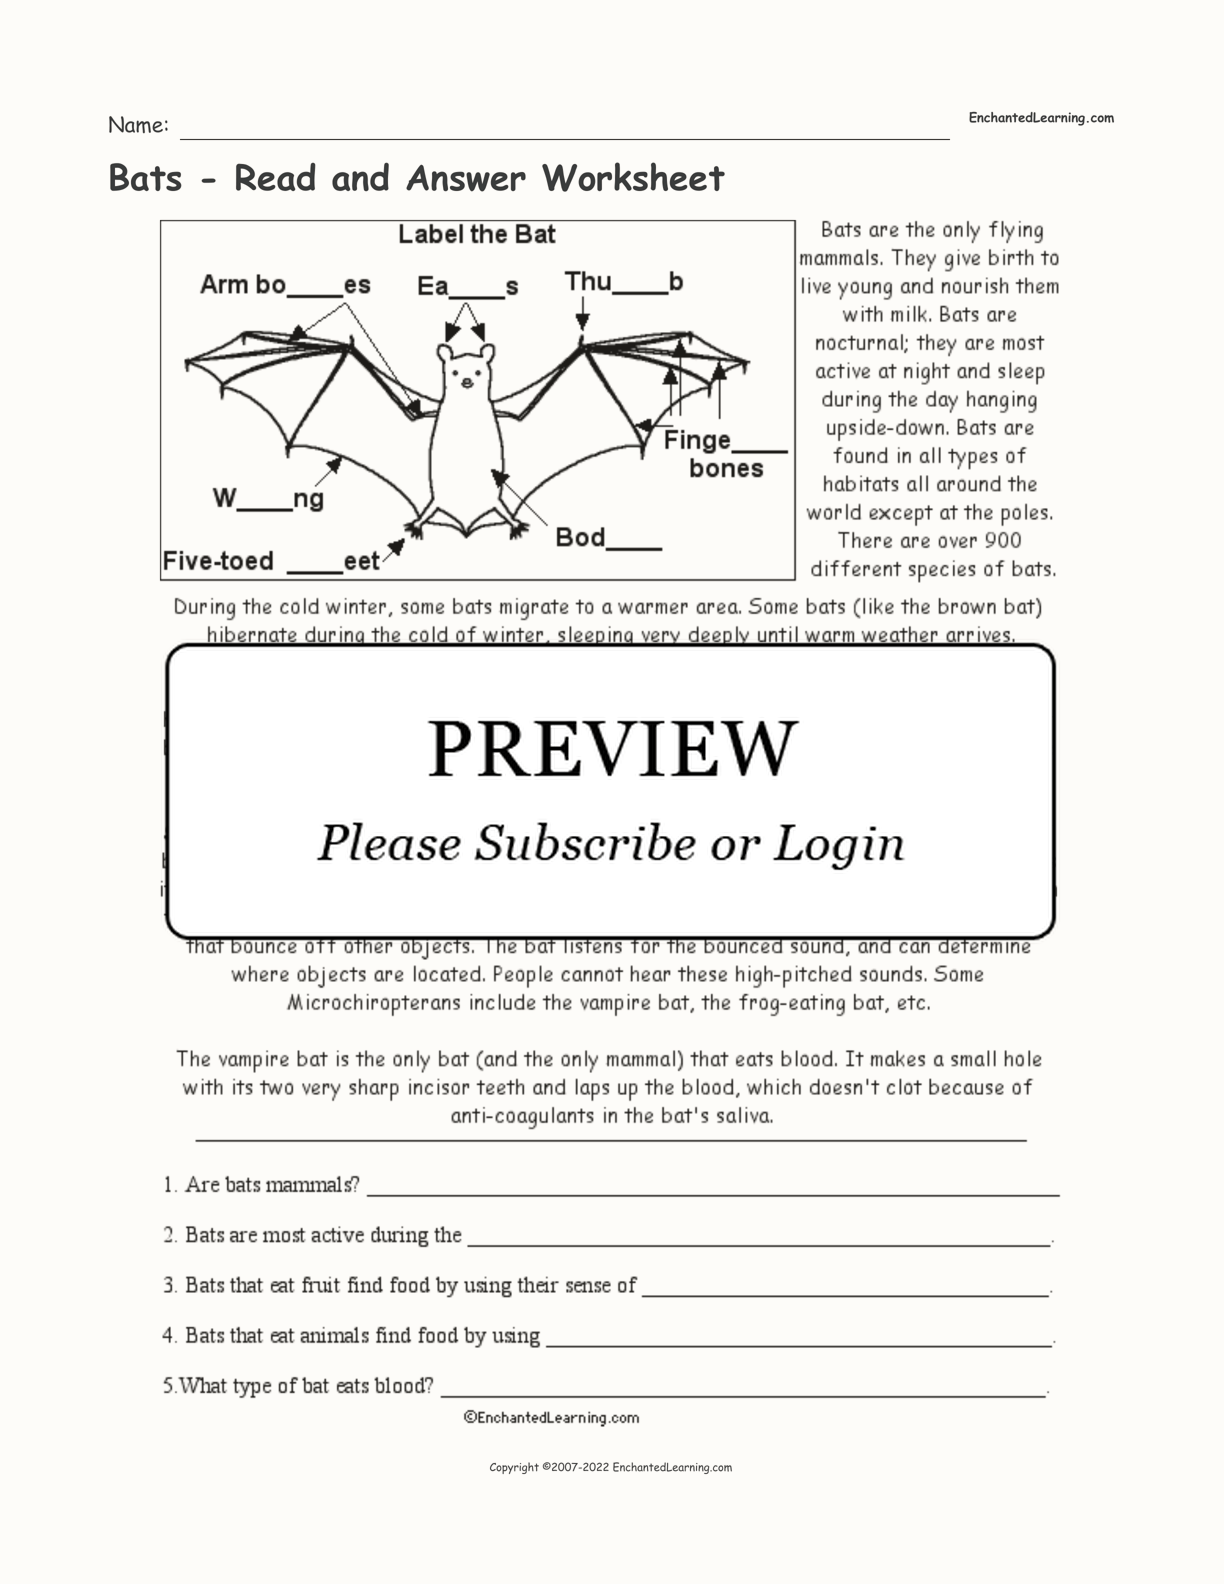 hight resolution of Bats - Read and Answer Worksheet - Enchanted Learning